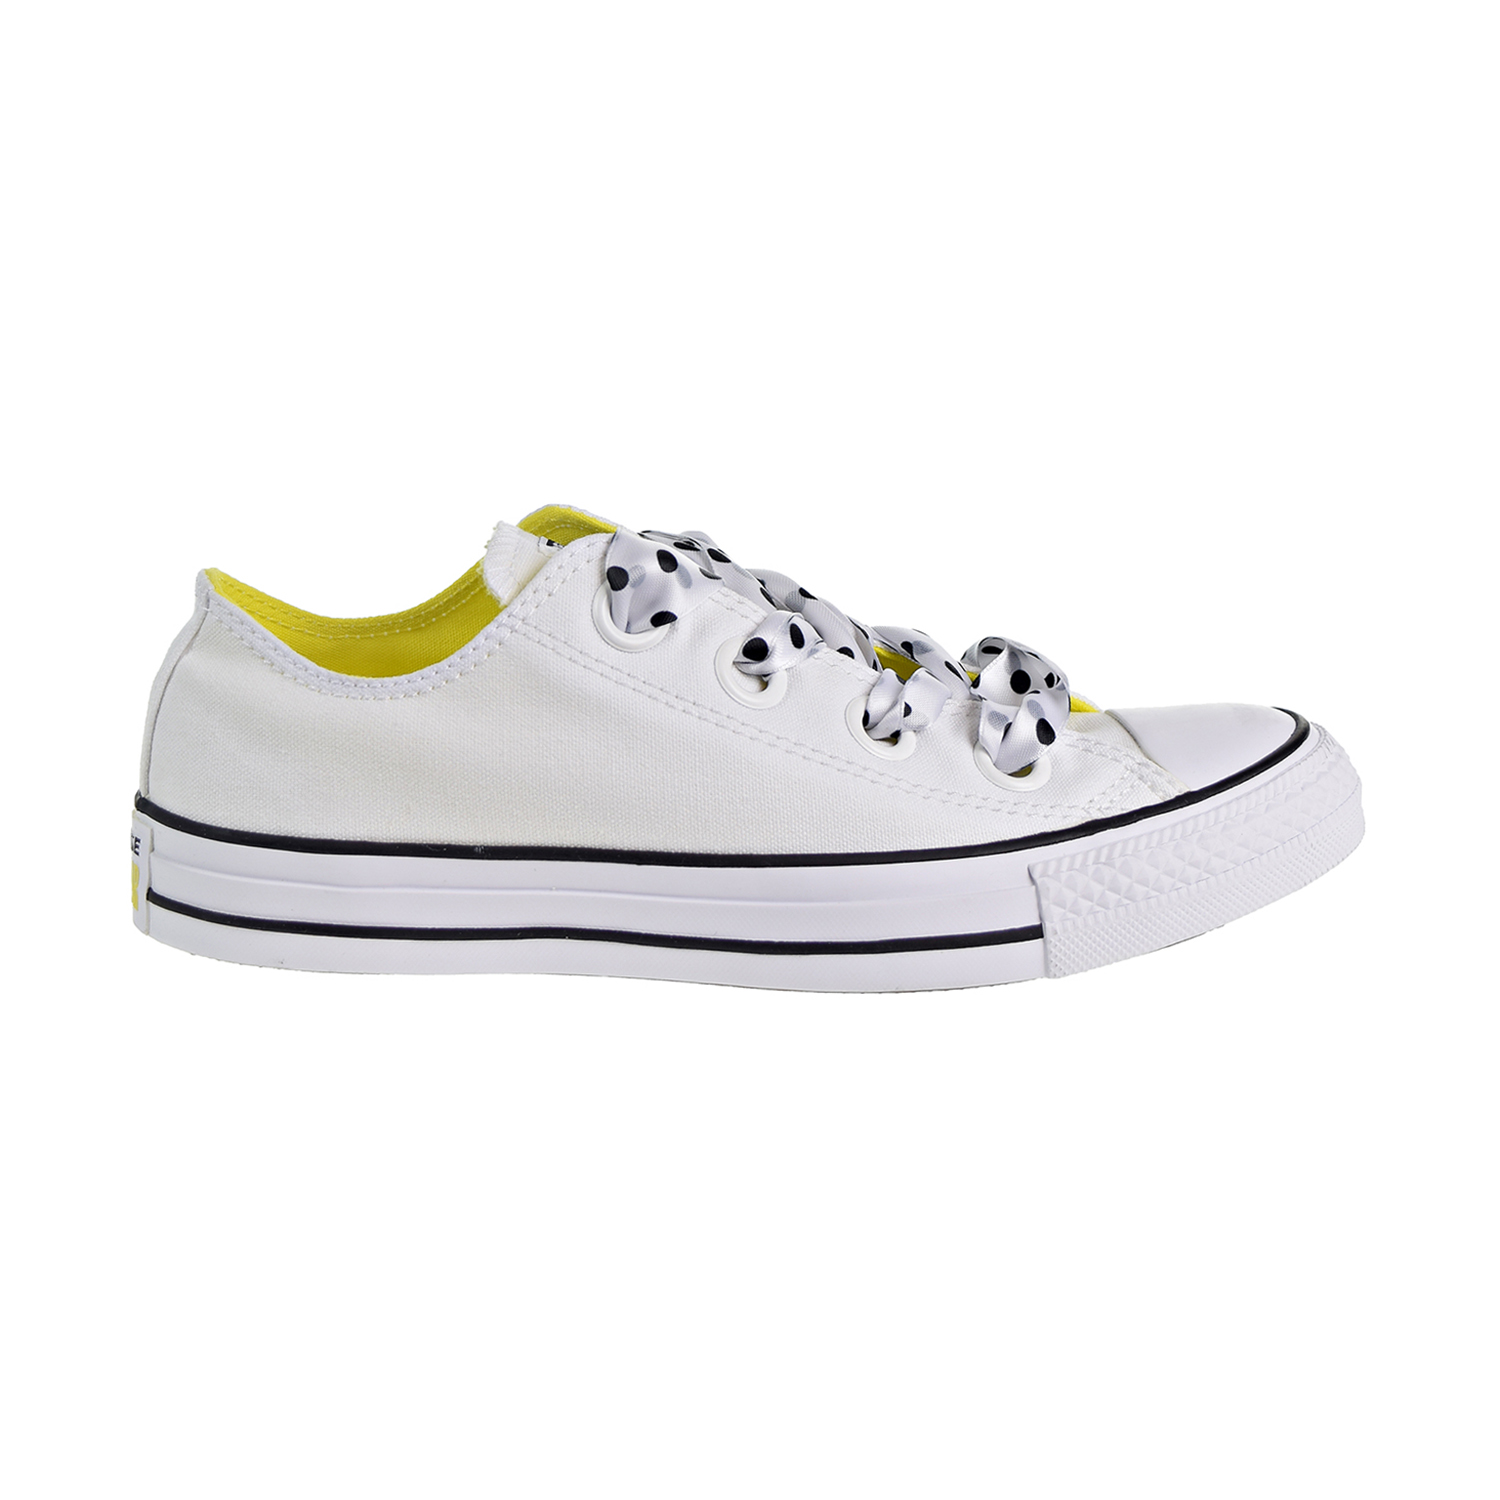 019f8f0d7b76 Details about Converse Chuck Taylor All Star Big Eyelets OX Women s Shoes  White Yellow 560670C